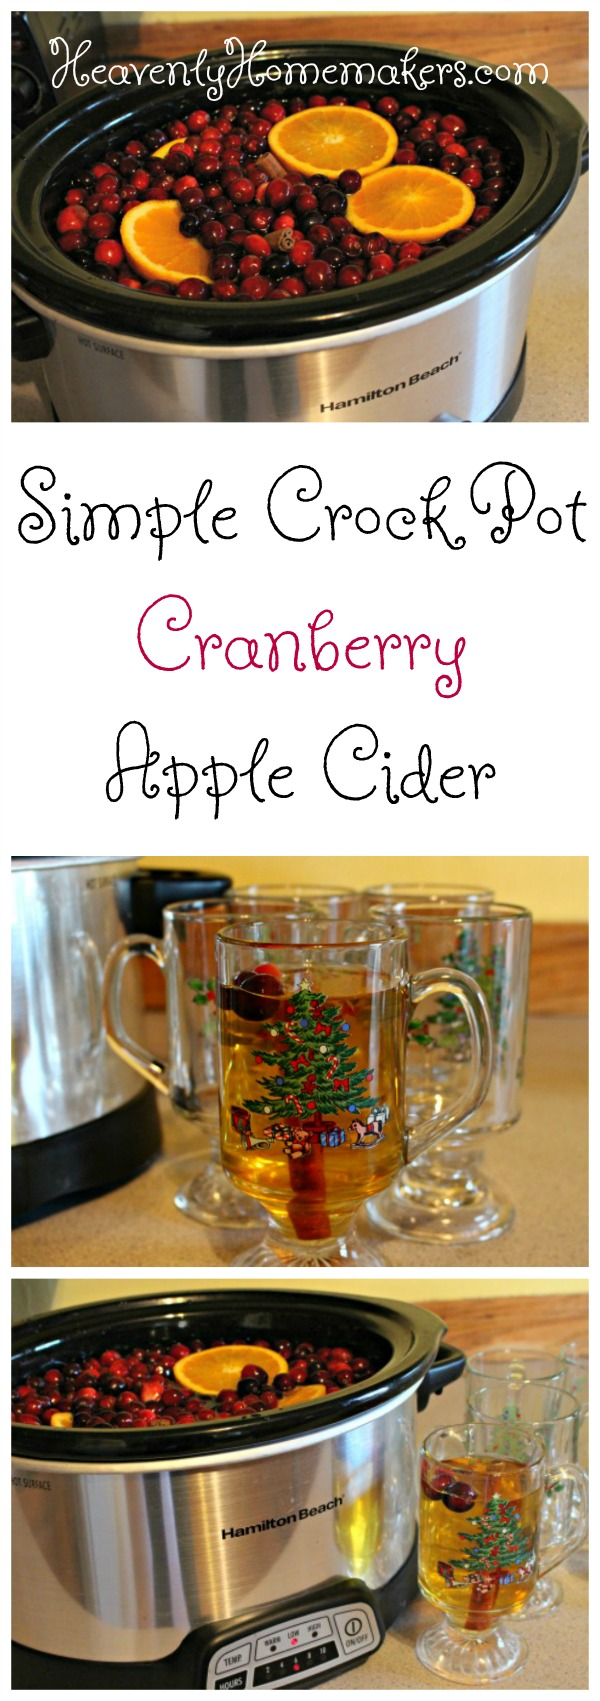 Simple Crock Pot Cranberry Apple Cider